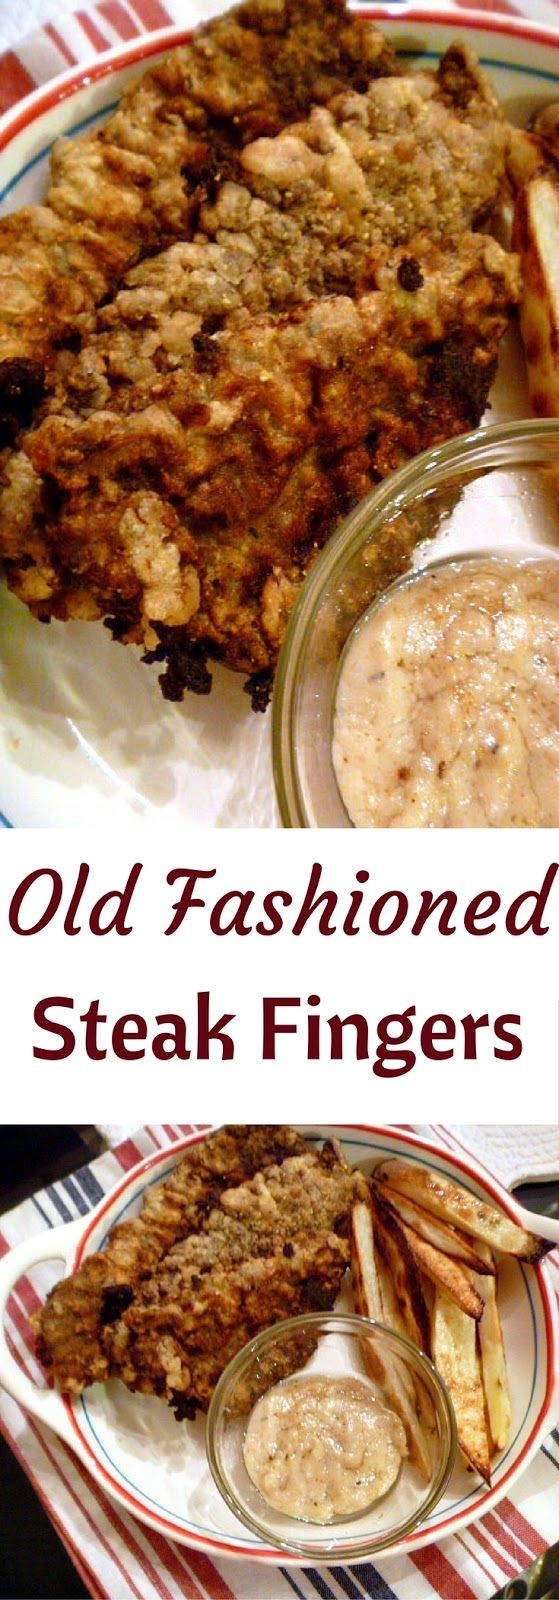 Nothing better than comfort food and that spells Old Fashioned Steak Fingers in our house! Slice of Southern